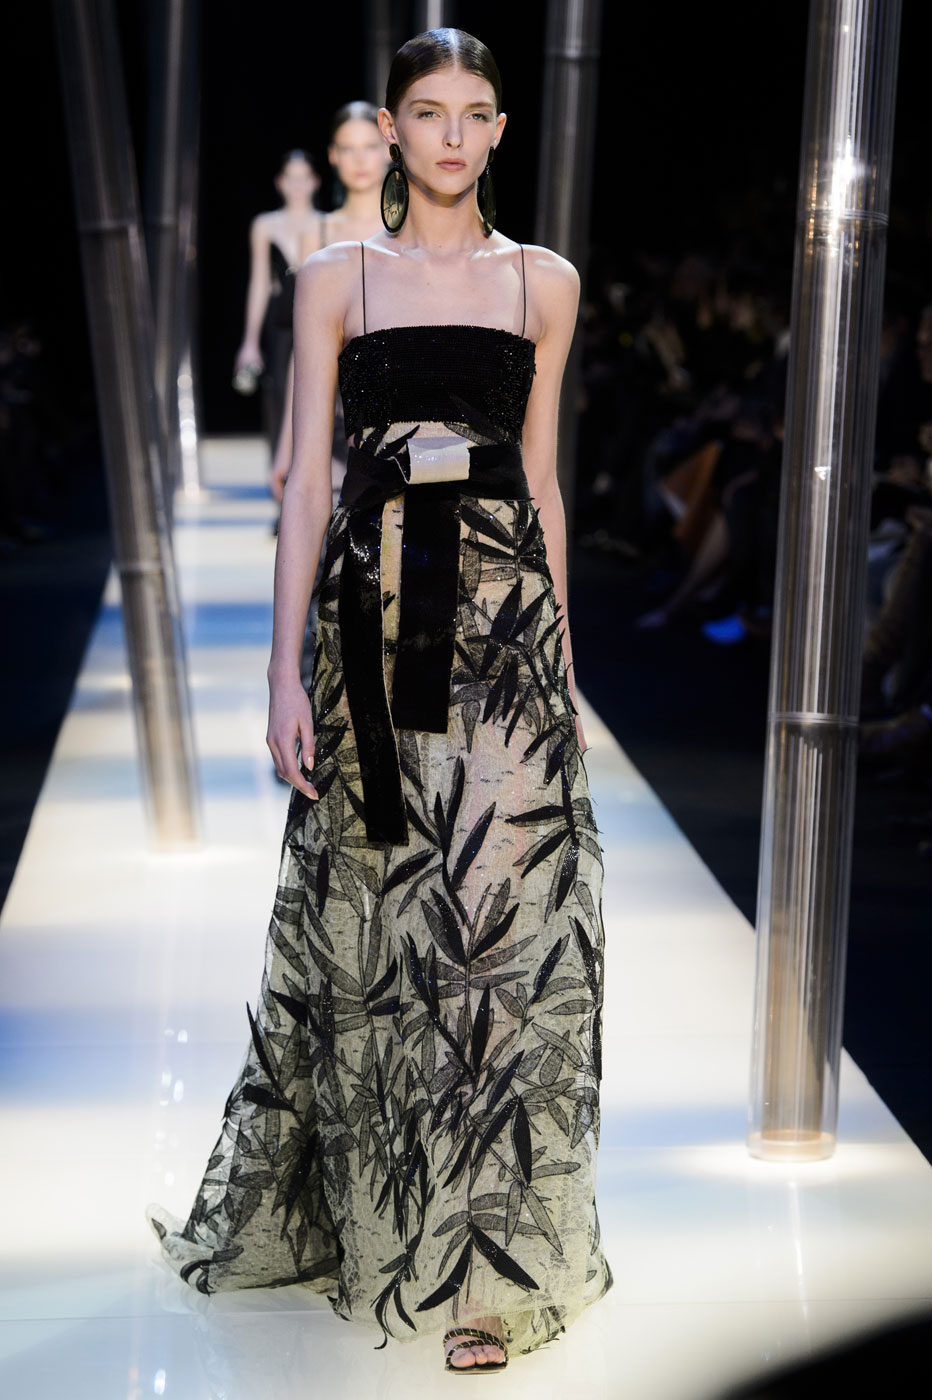 Giorgio-armani-Prive-fashion-runway-show-haute-couture-paris-spring-2015-the-impression-103